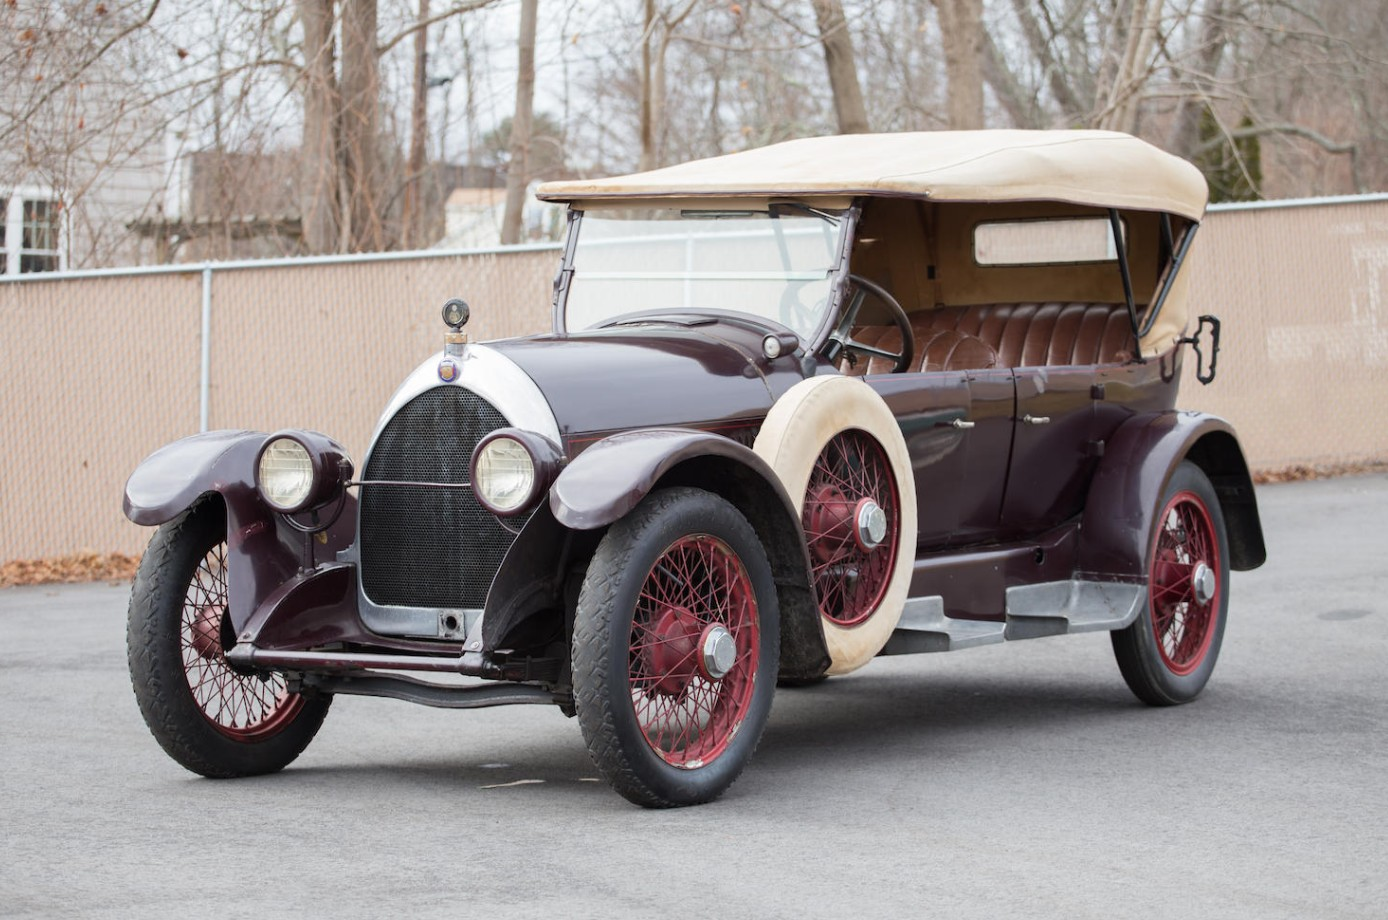 1920 Revere Model A Four Passenger Touring Classiccarweekly Net